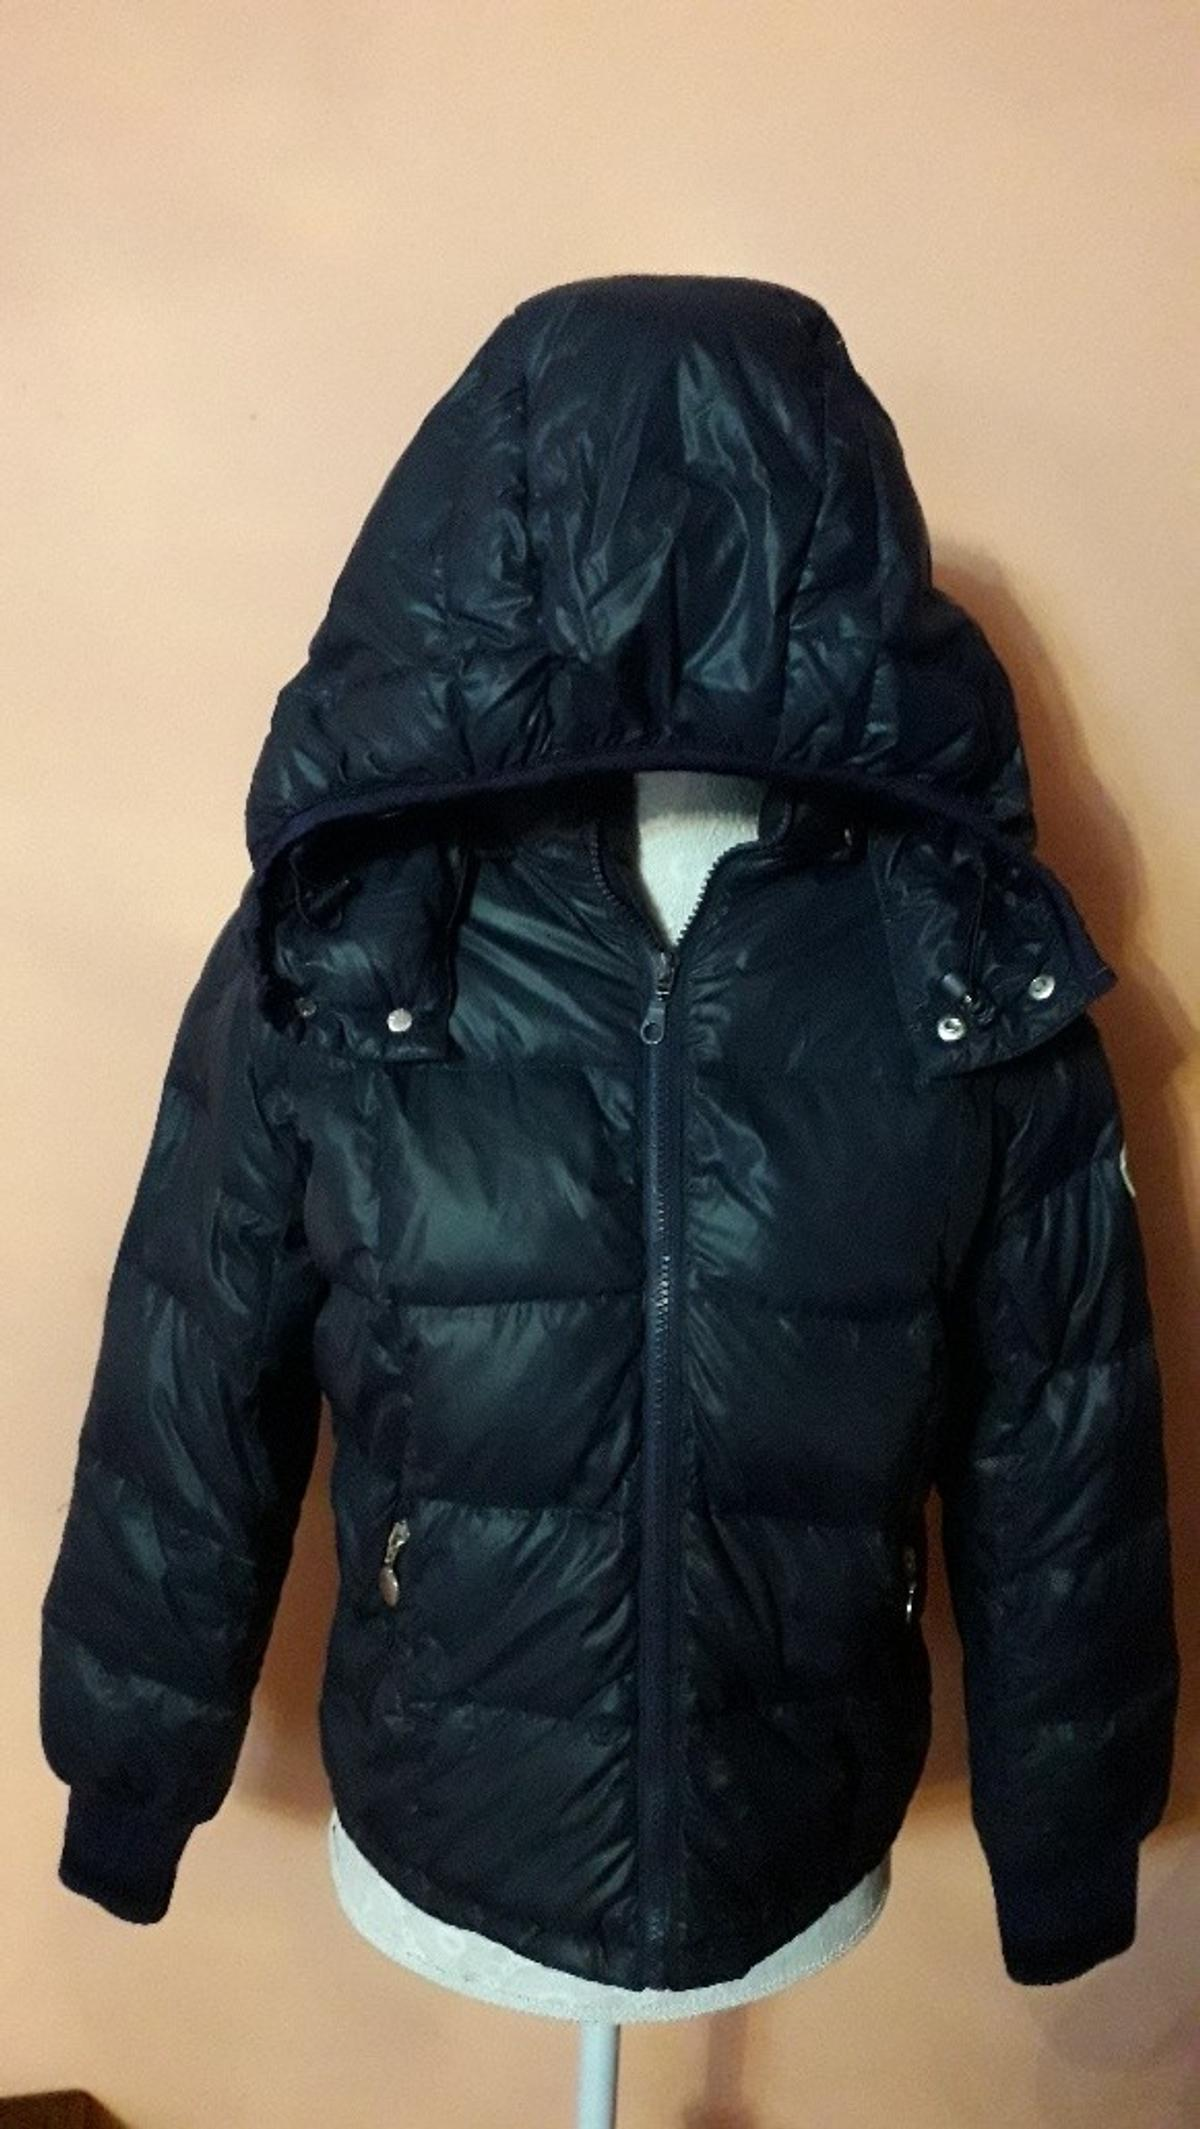 new style 4af2f 00eca Giubbotto invernale Moncler bambino in 30026 Portogruaro for ...